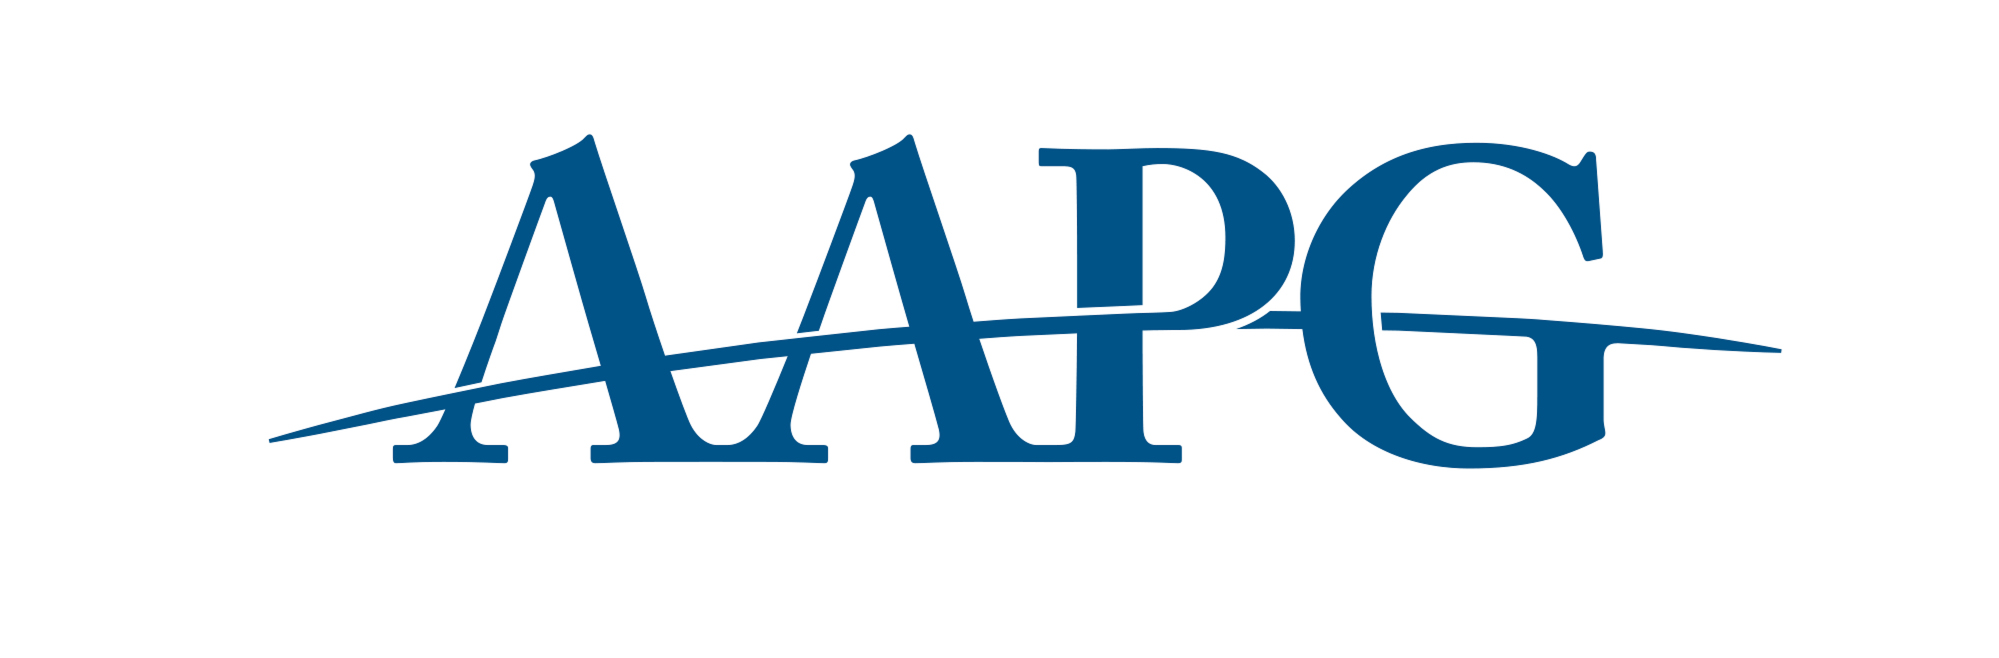 AMERICAN ASSOCIATION OF PETROLEUM GEOLOGIST (AAPG)